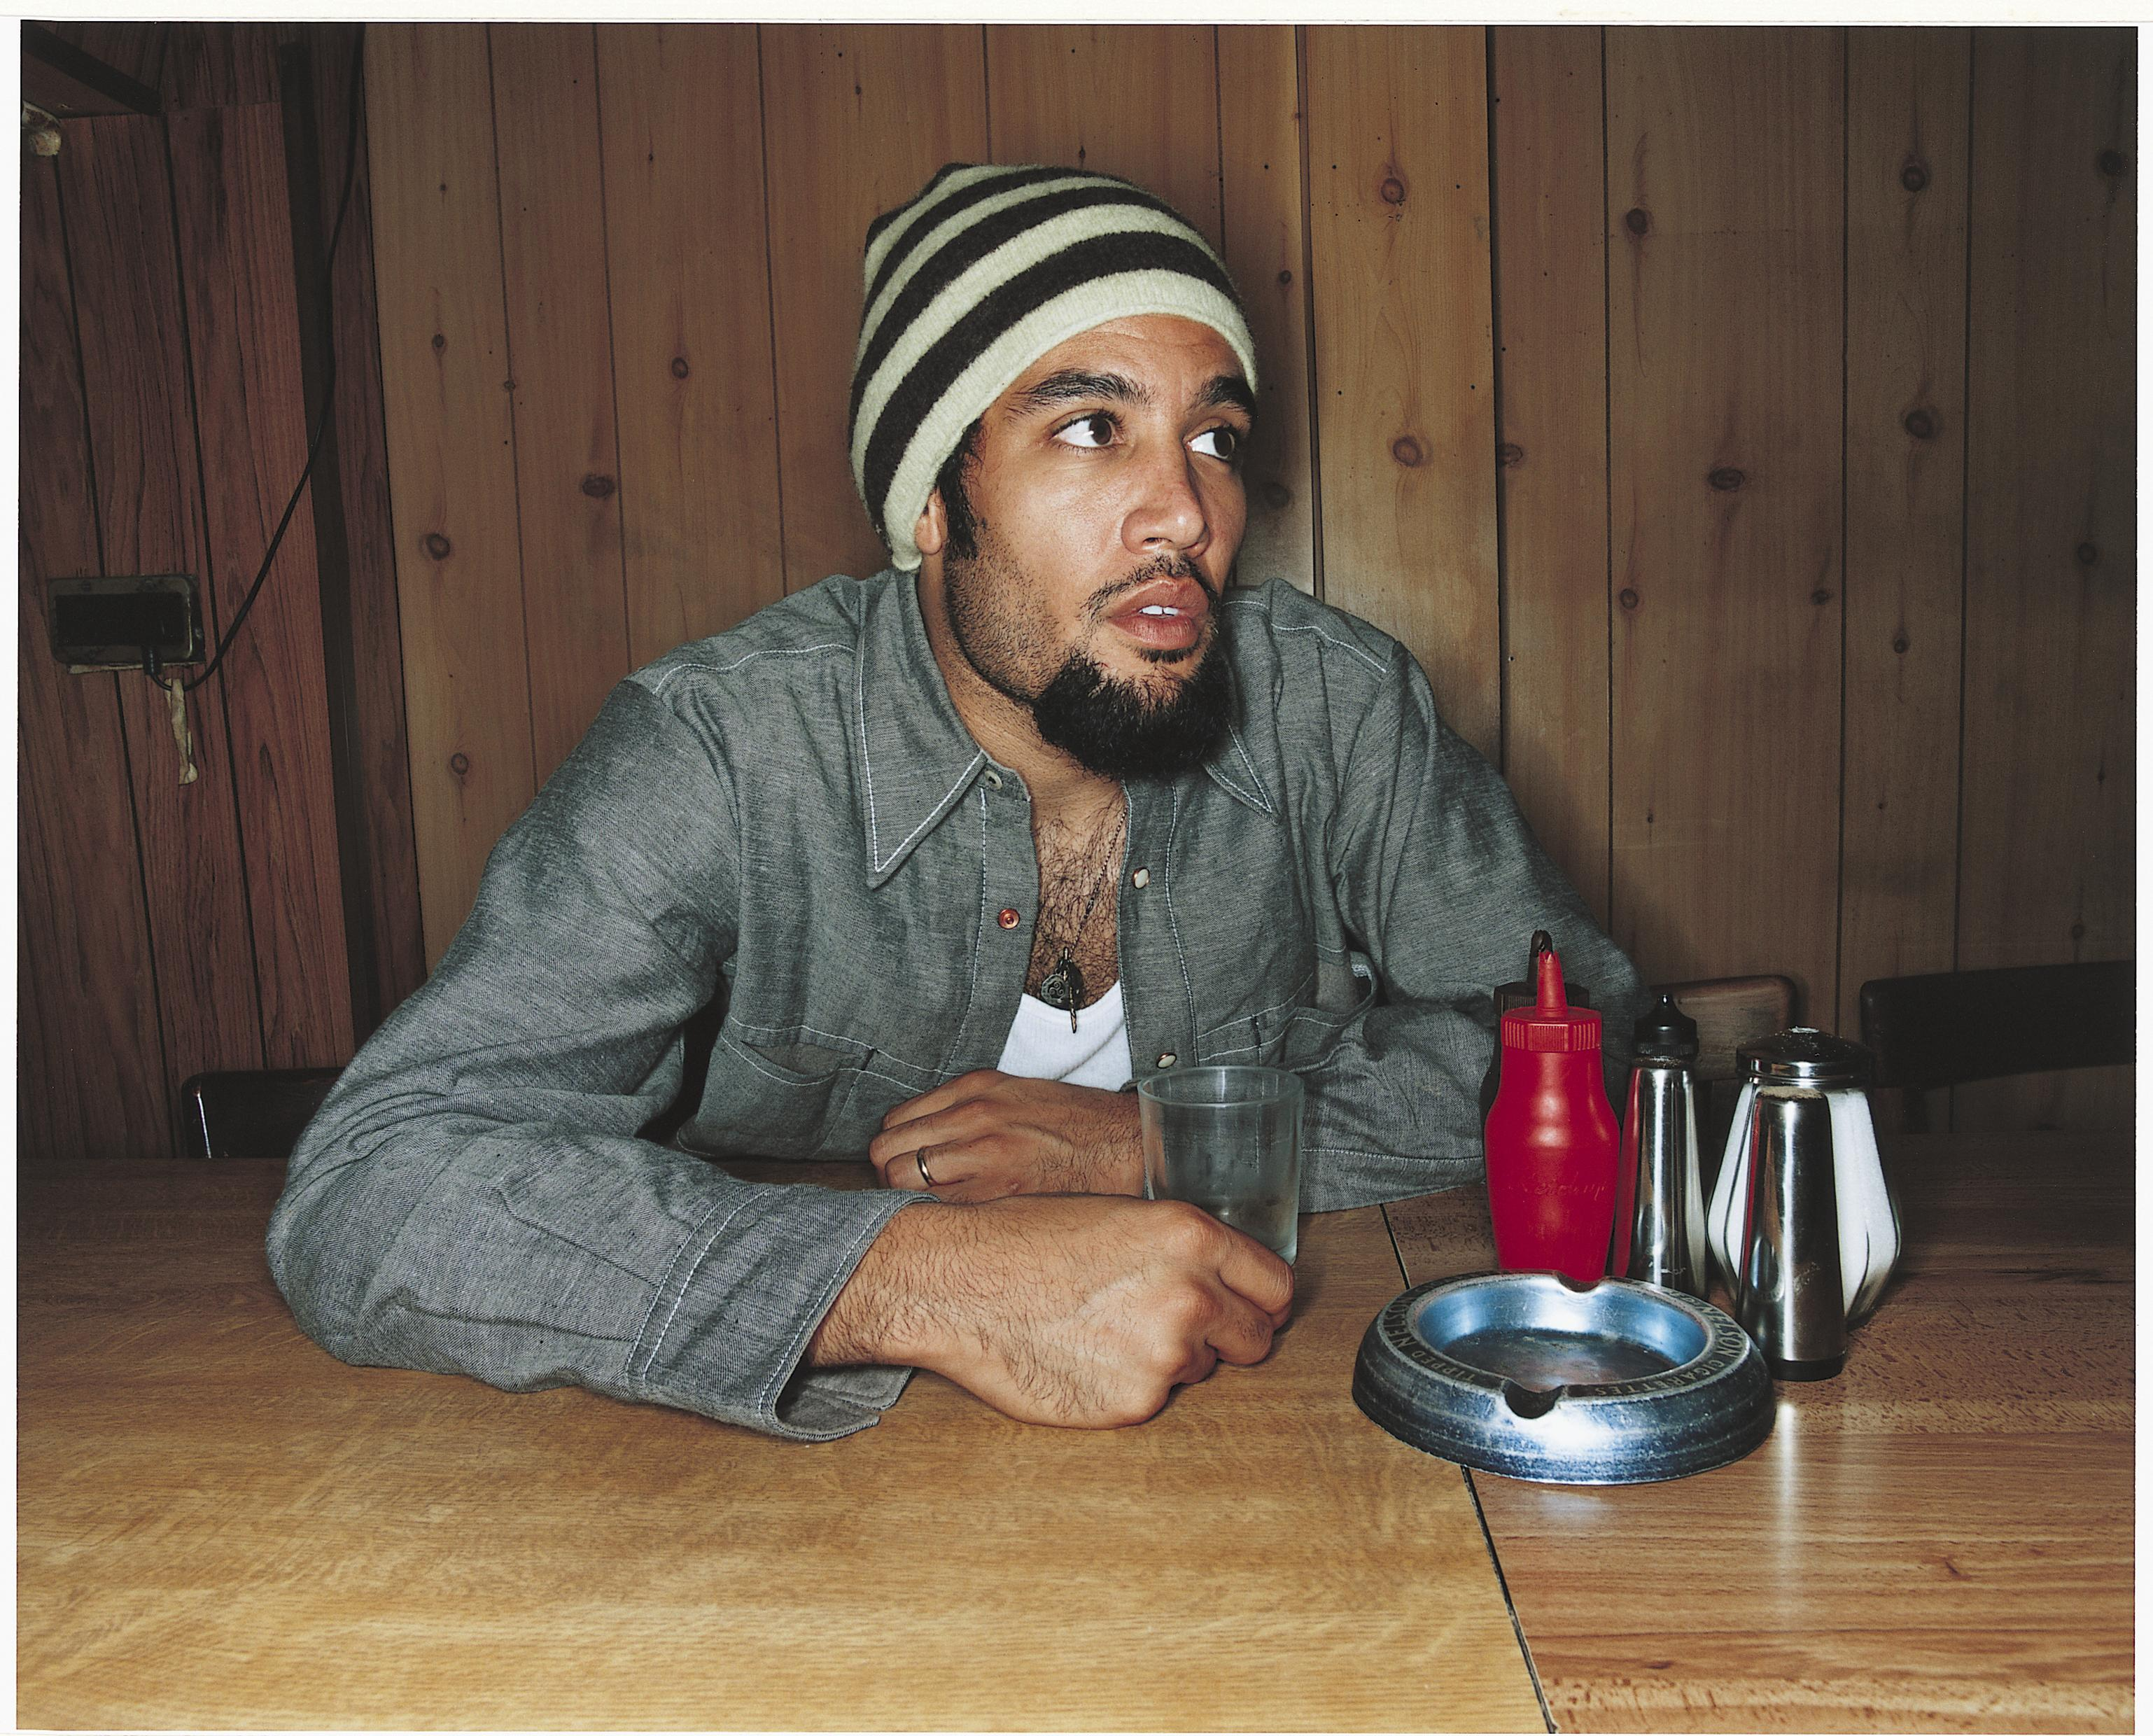 ben harper – waiting on an angelben harper amen omen, ben harper – waiting on an angel, ben harper walk away, ben harper & the innocent criminals, ben harper — «faithfully remain», ben harper fade into you, ben harper faded, ben harper waiting on an angel chords, ben harper amen omen перевод, ben harper - both sides of the gun, ben harper alone, ben harper and charlie musselwhite, ben harper lyrics, ben harper flac, ben harper guitar, ben harper wiki, ben harper rutracker, ben harper paris sunrise, ben harper lyrics waiting on an angel, ben harper fade into you lyrics